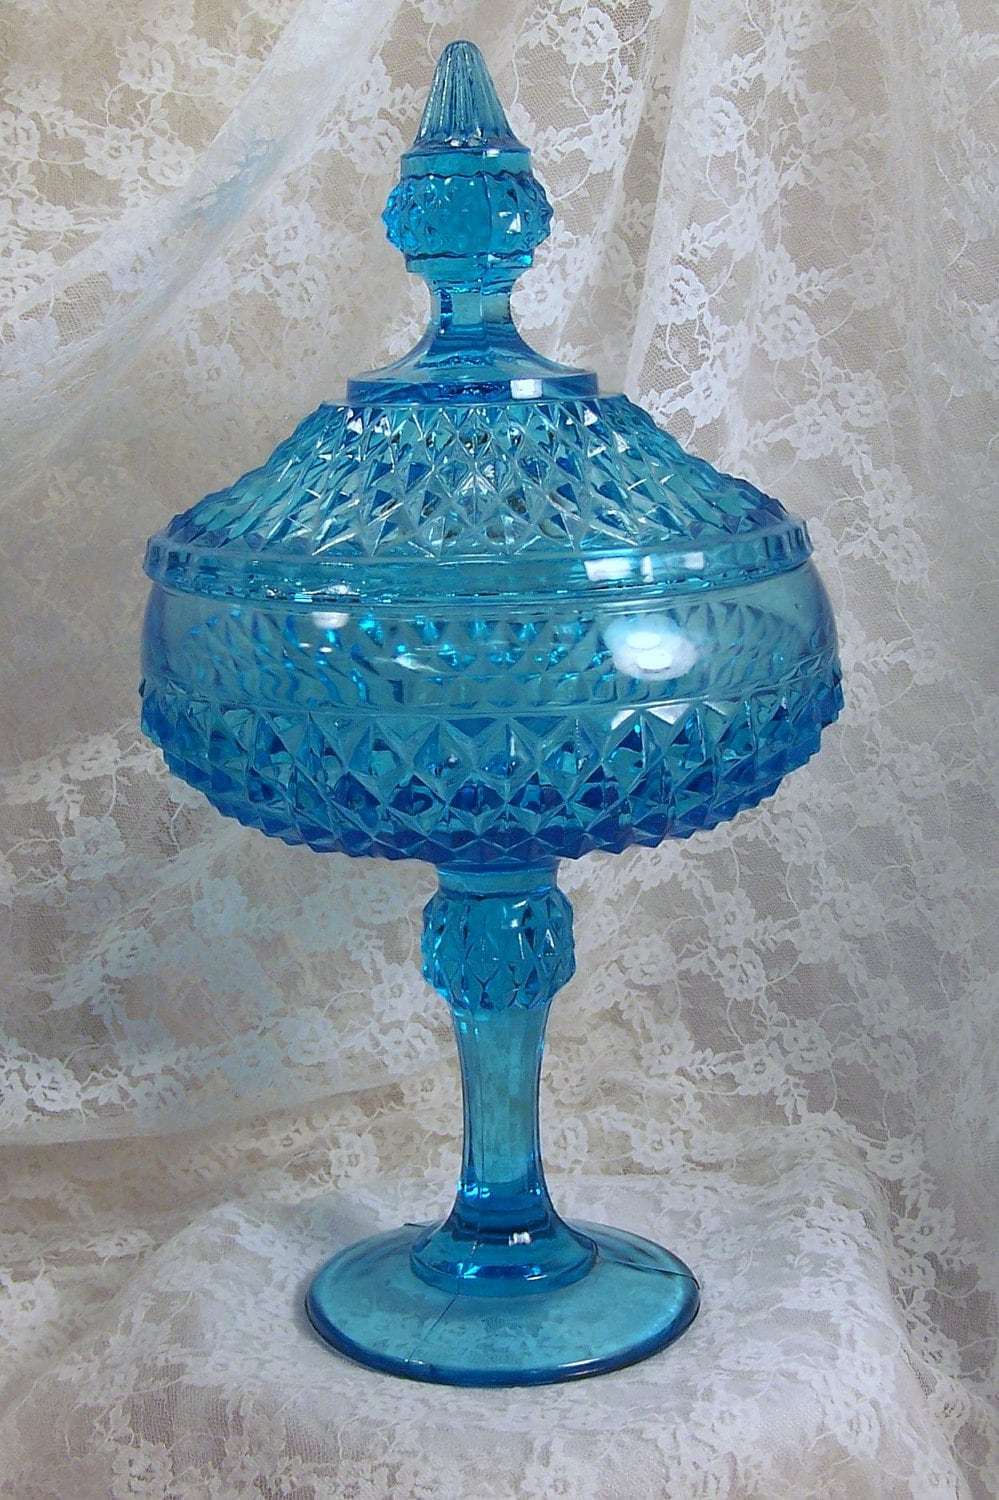 Aqua Blue Candy Dish Depression Glass Compote Collectible